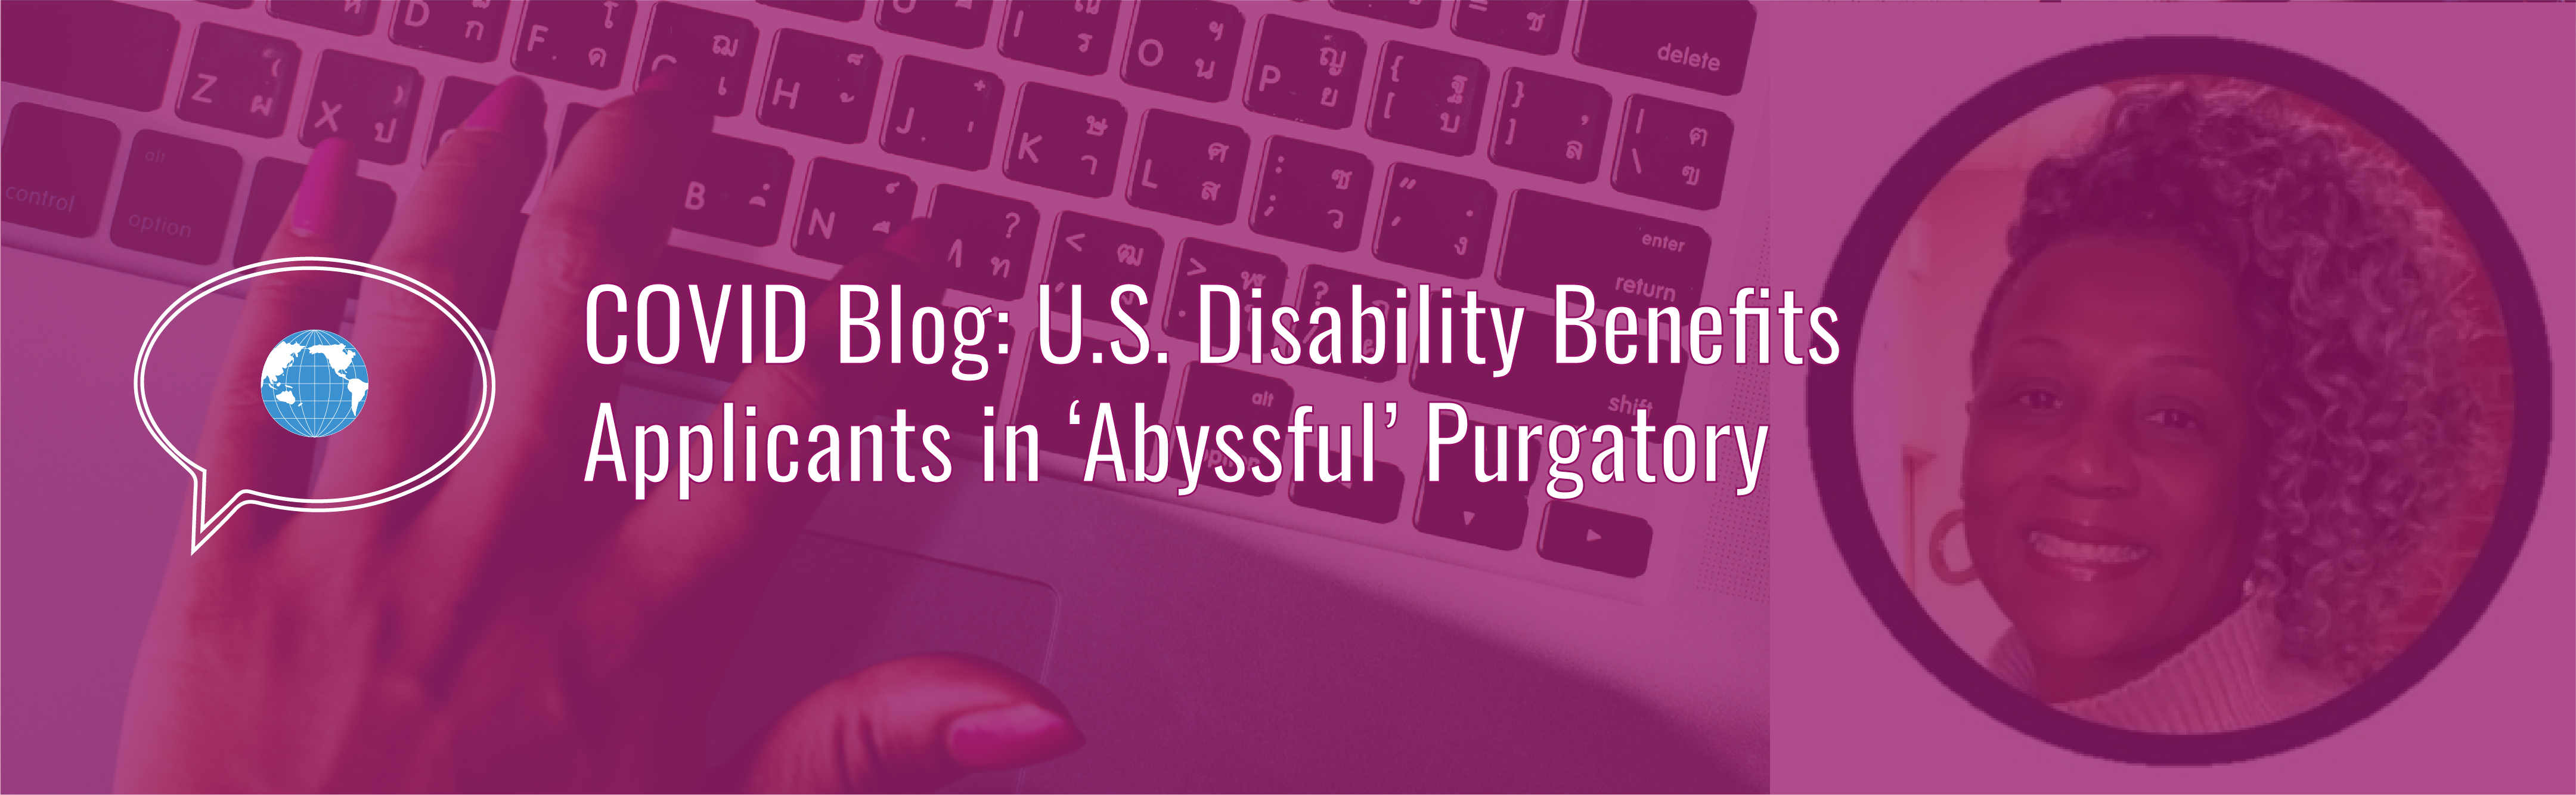 Banner with text: COVID Blog: US Disability Benefits Applicants in 'Abyssful' Purgatory. Icon of speech bubble with WID globe. Background photo of a hand typing on a laptop computer and author photo with a magenta tint. Author photo of Sabrinah White, a Black woman with curly black and gray hair, smiling.